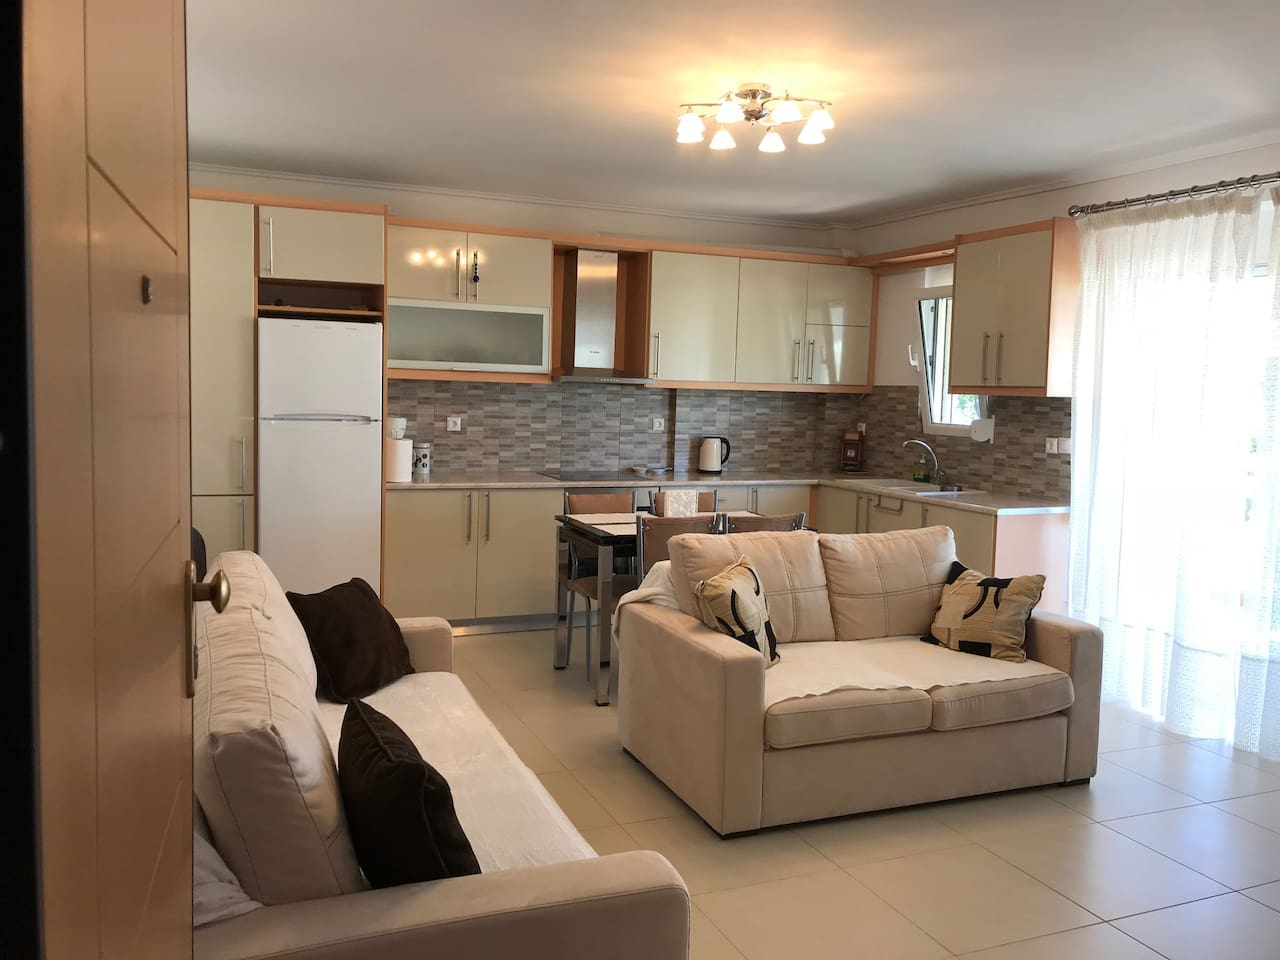 Kitchen and dinning area with living room